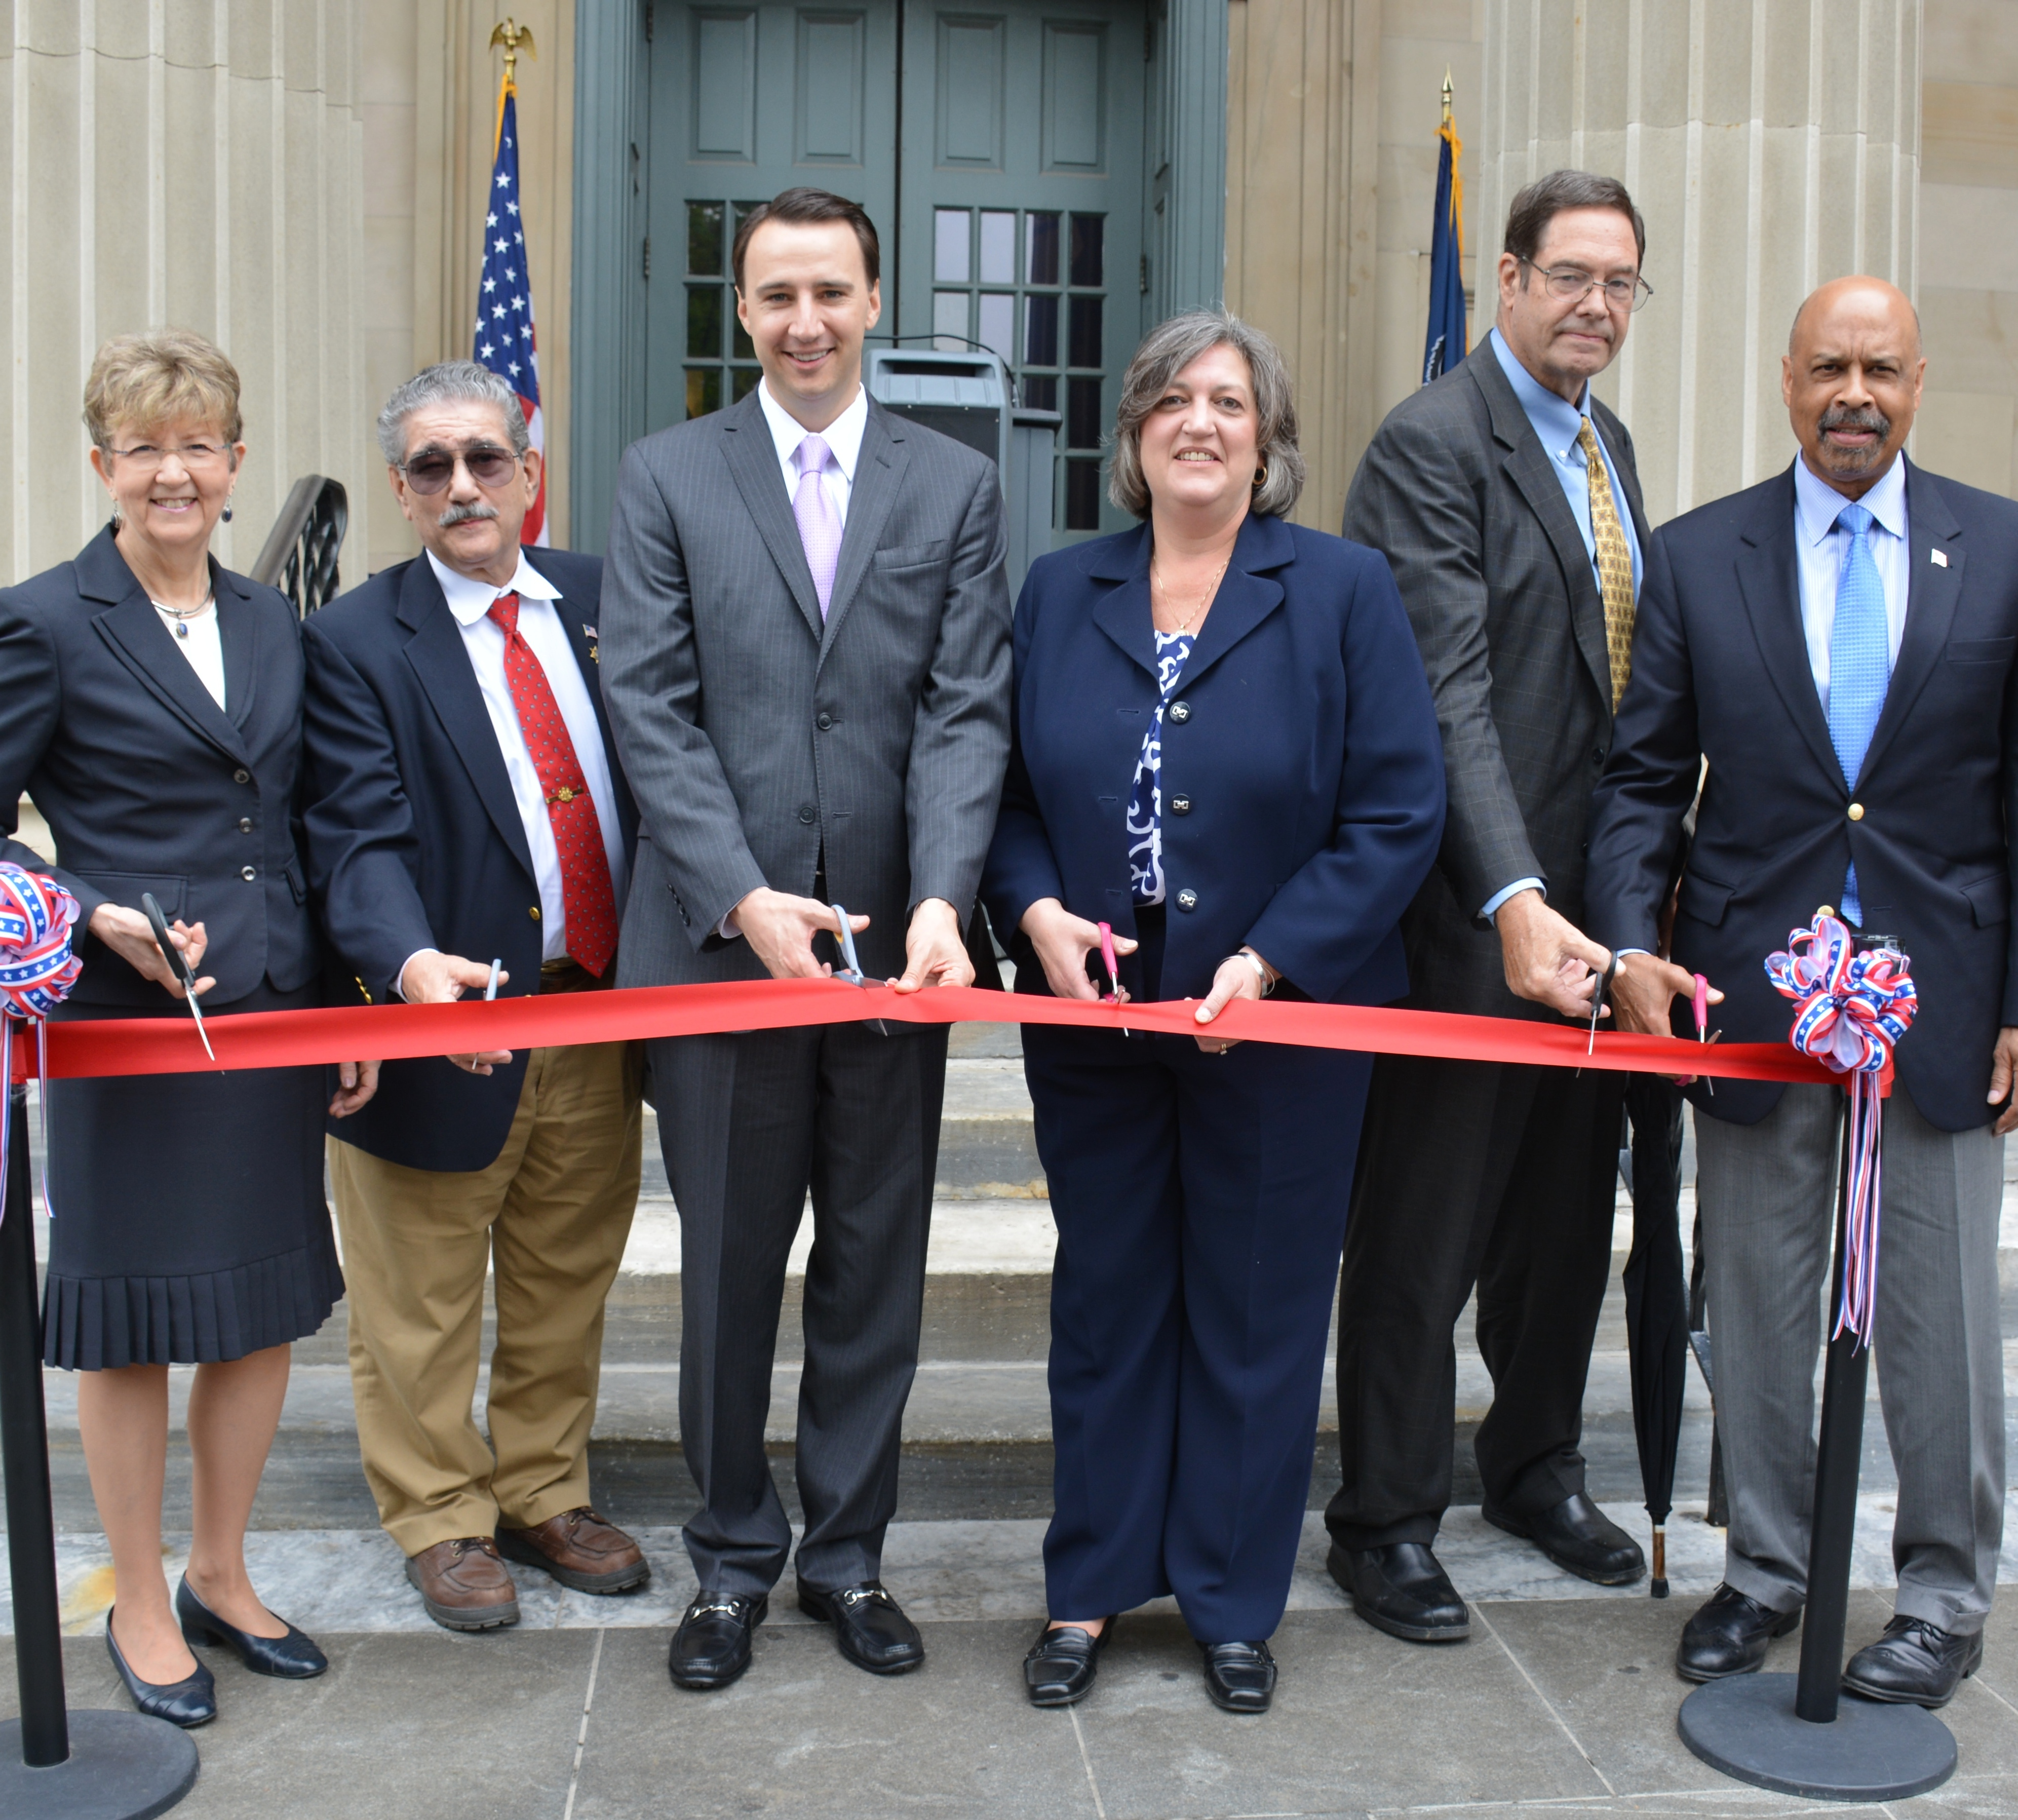 District Judge Gwenn Knapp (from left), Tony Polito from West Chester Men's Service Club, Commissioner Ryan Costello, Commissioner Kathi Cozzone, Chester County Court President Judge James P. MacElree II and Commissioner Terence Farrell assemble for the ribbon-cutting at the historic courthouse.